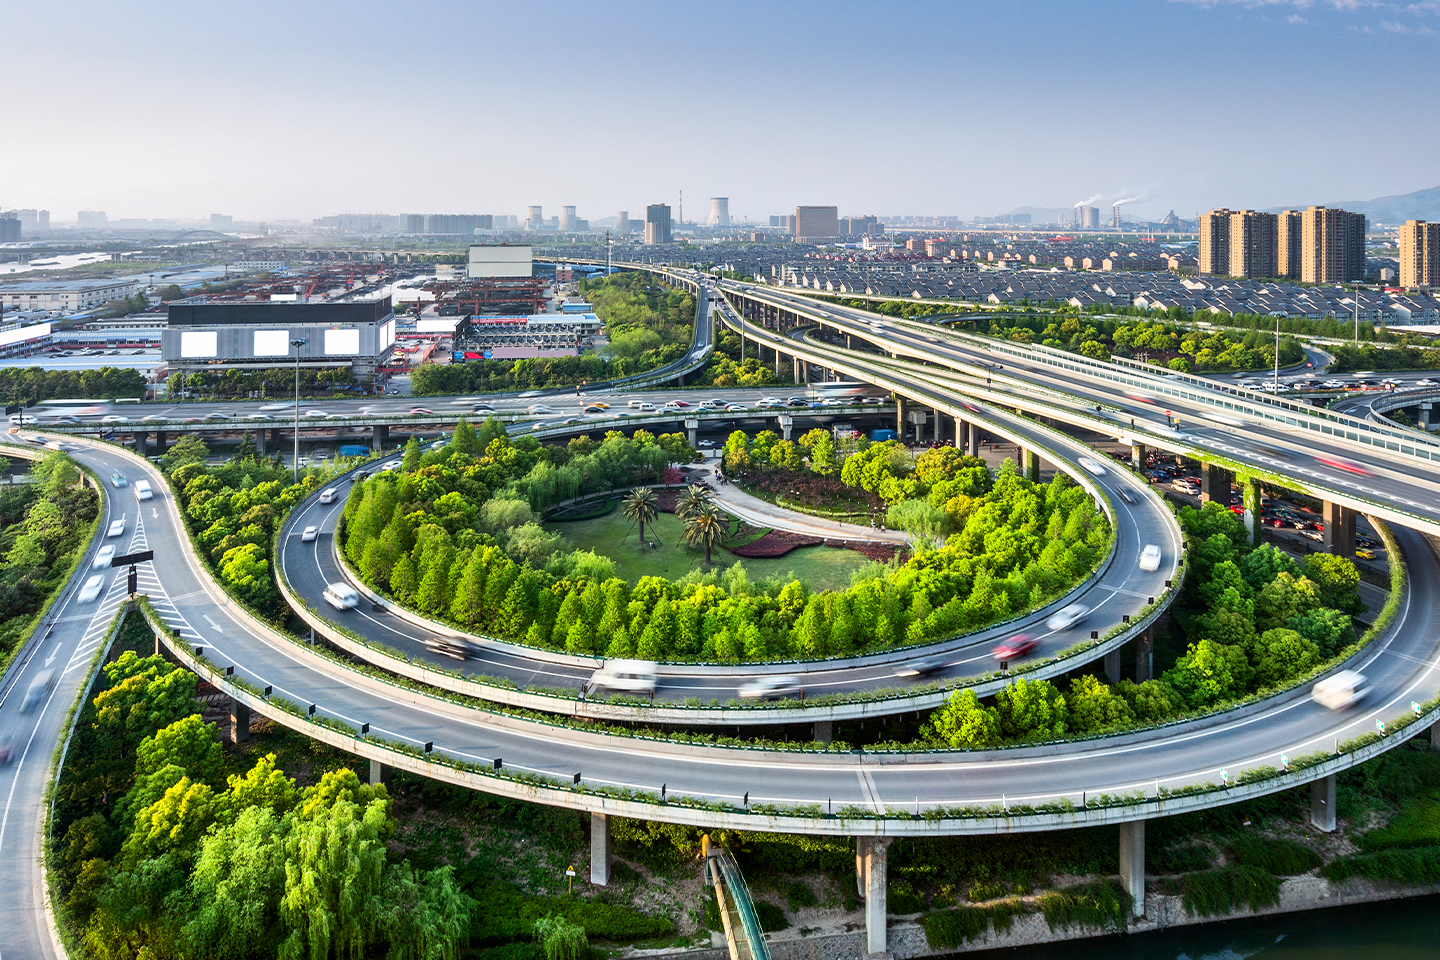 Enhancing durability of social infrastructure, such as bridges and expressways